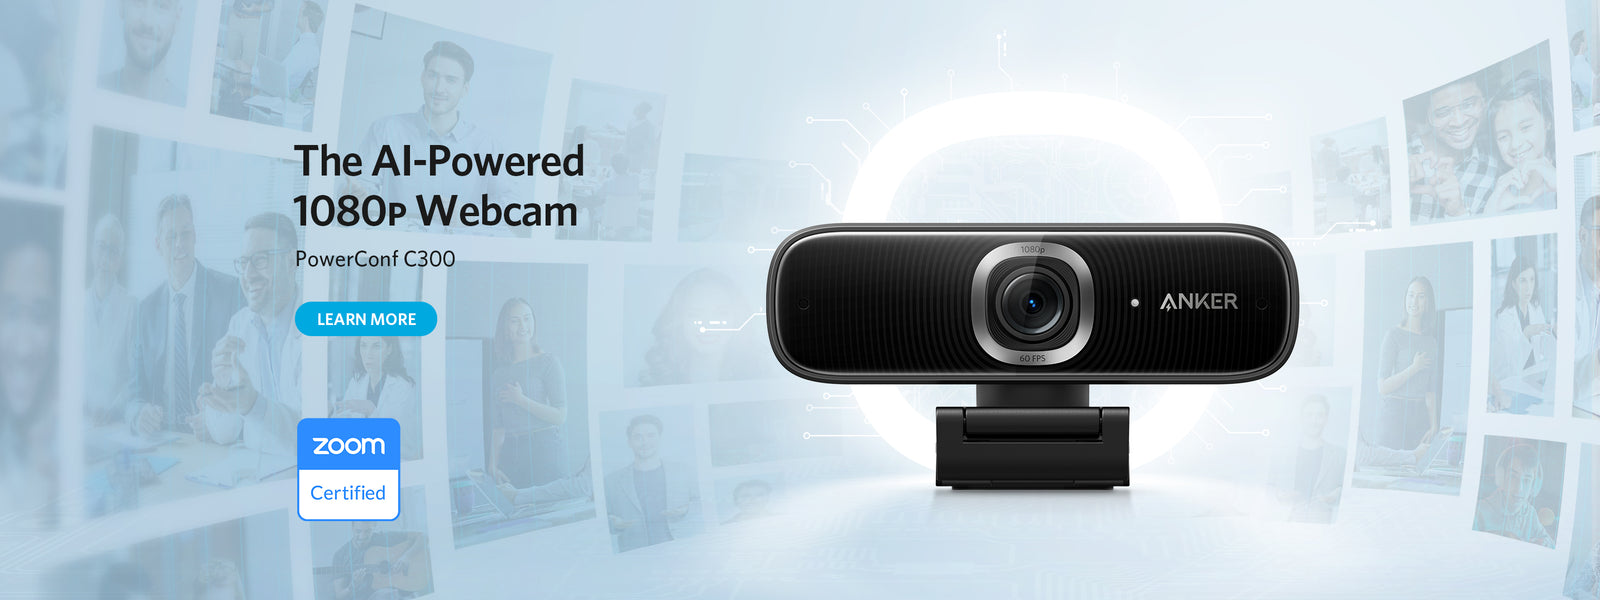 Anker Coupon Codes - Webcam PowerConf C300 @ just $129.99